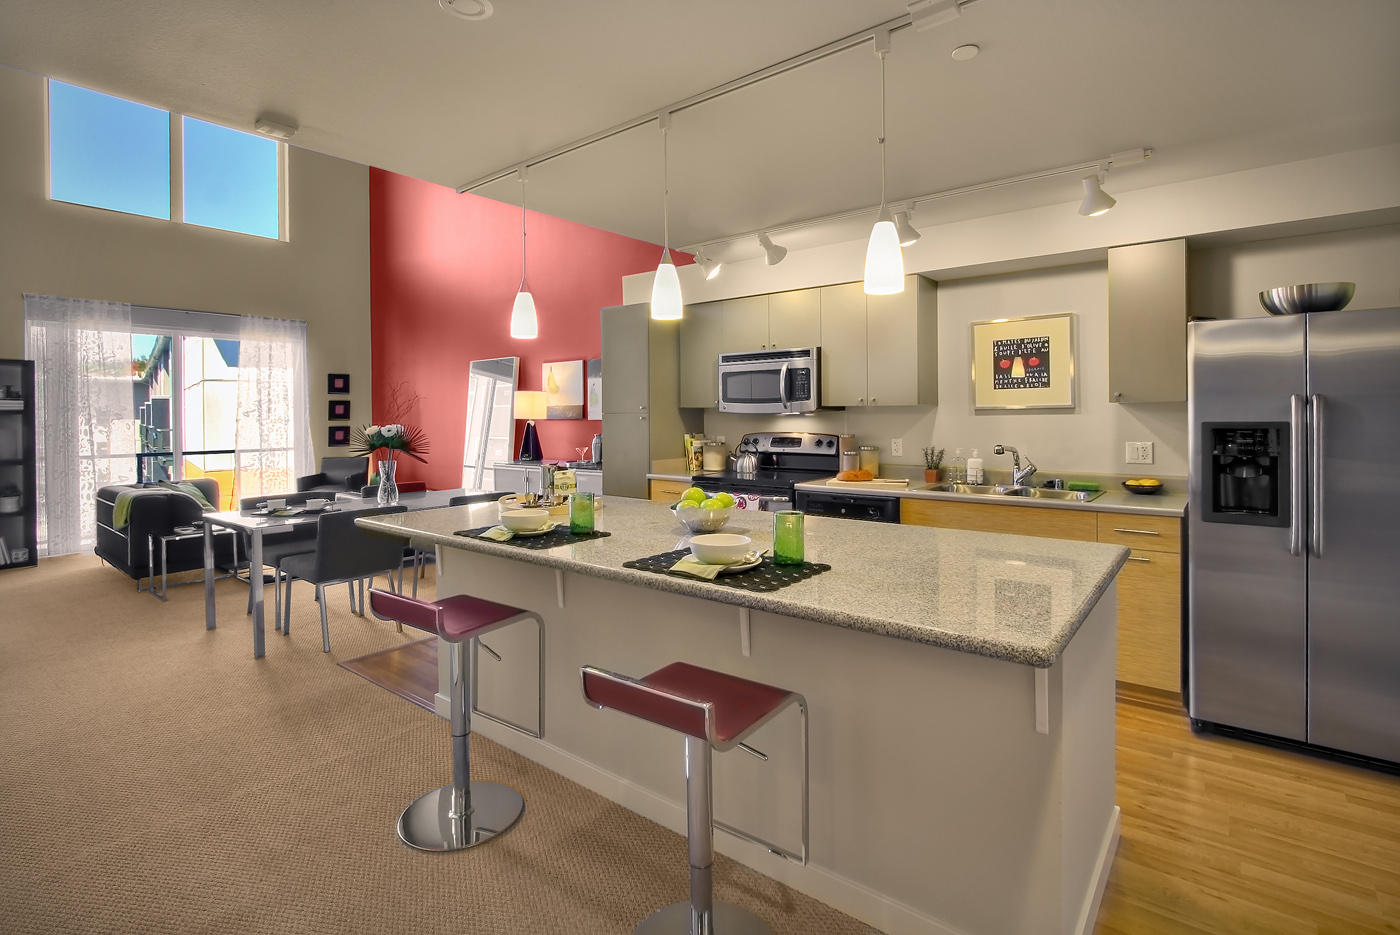 Seattle Djc Com Local Business News And Data Real Estate Legacy Opens 135 Apartments In Redmond